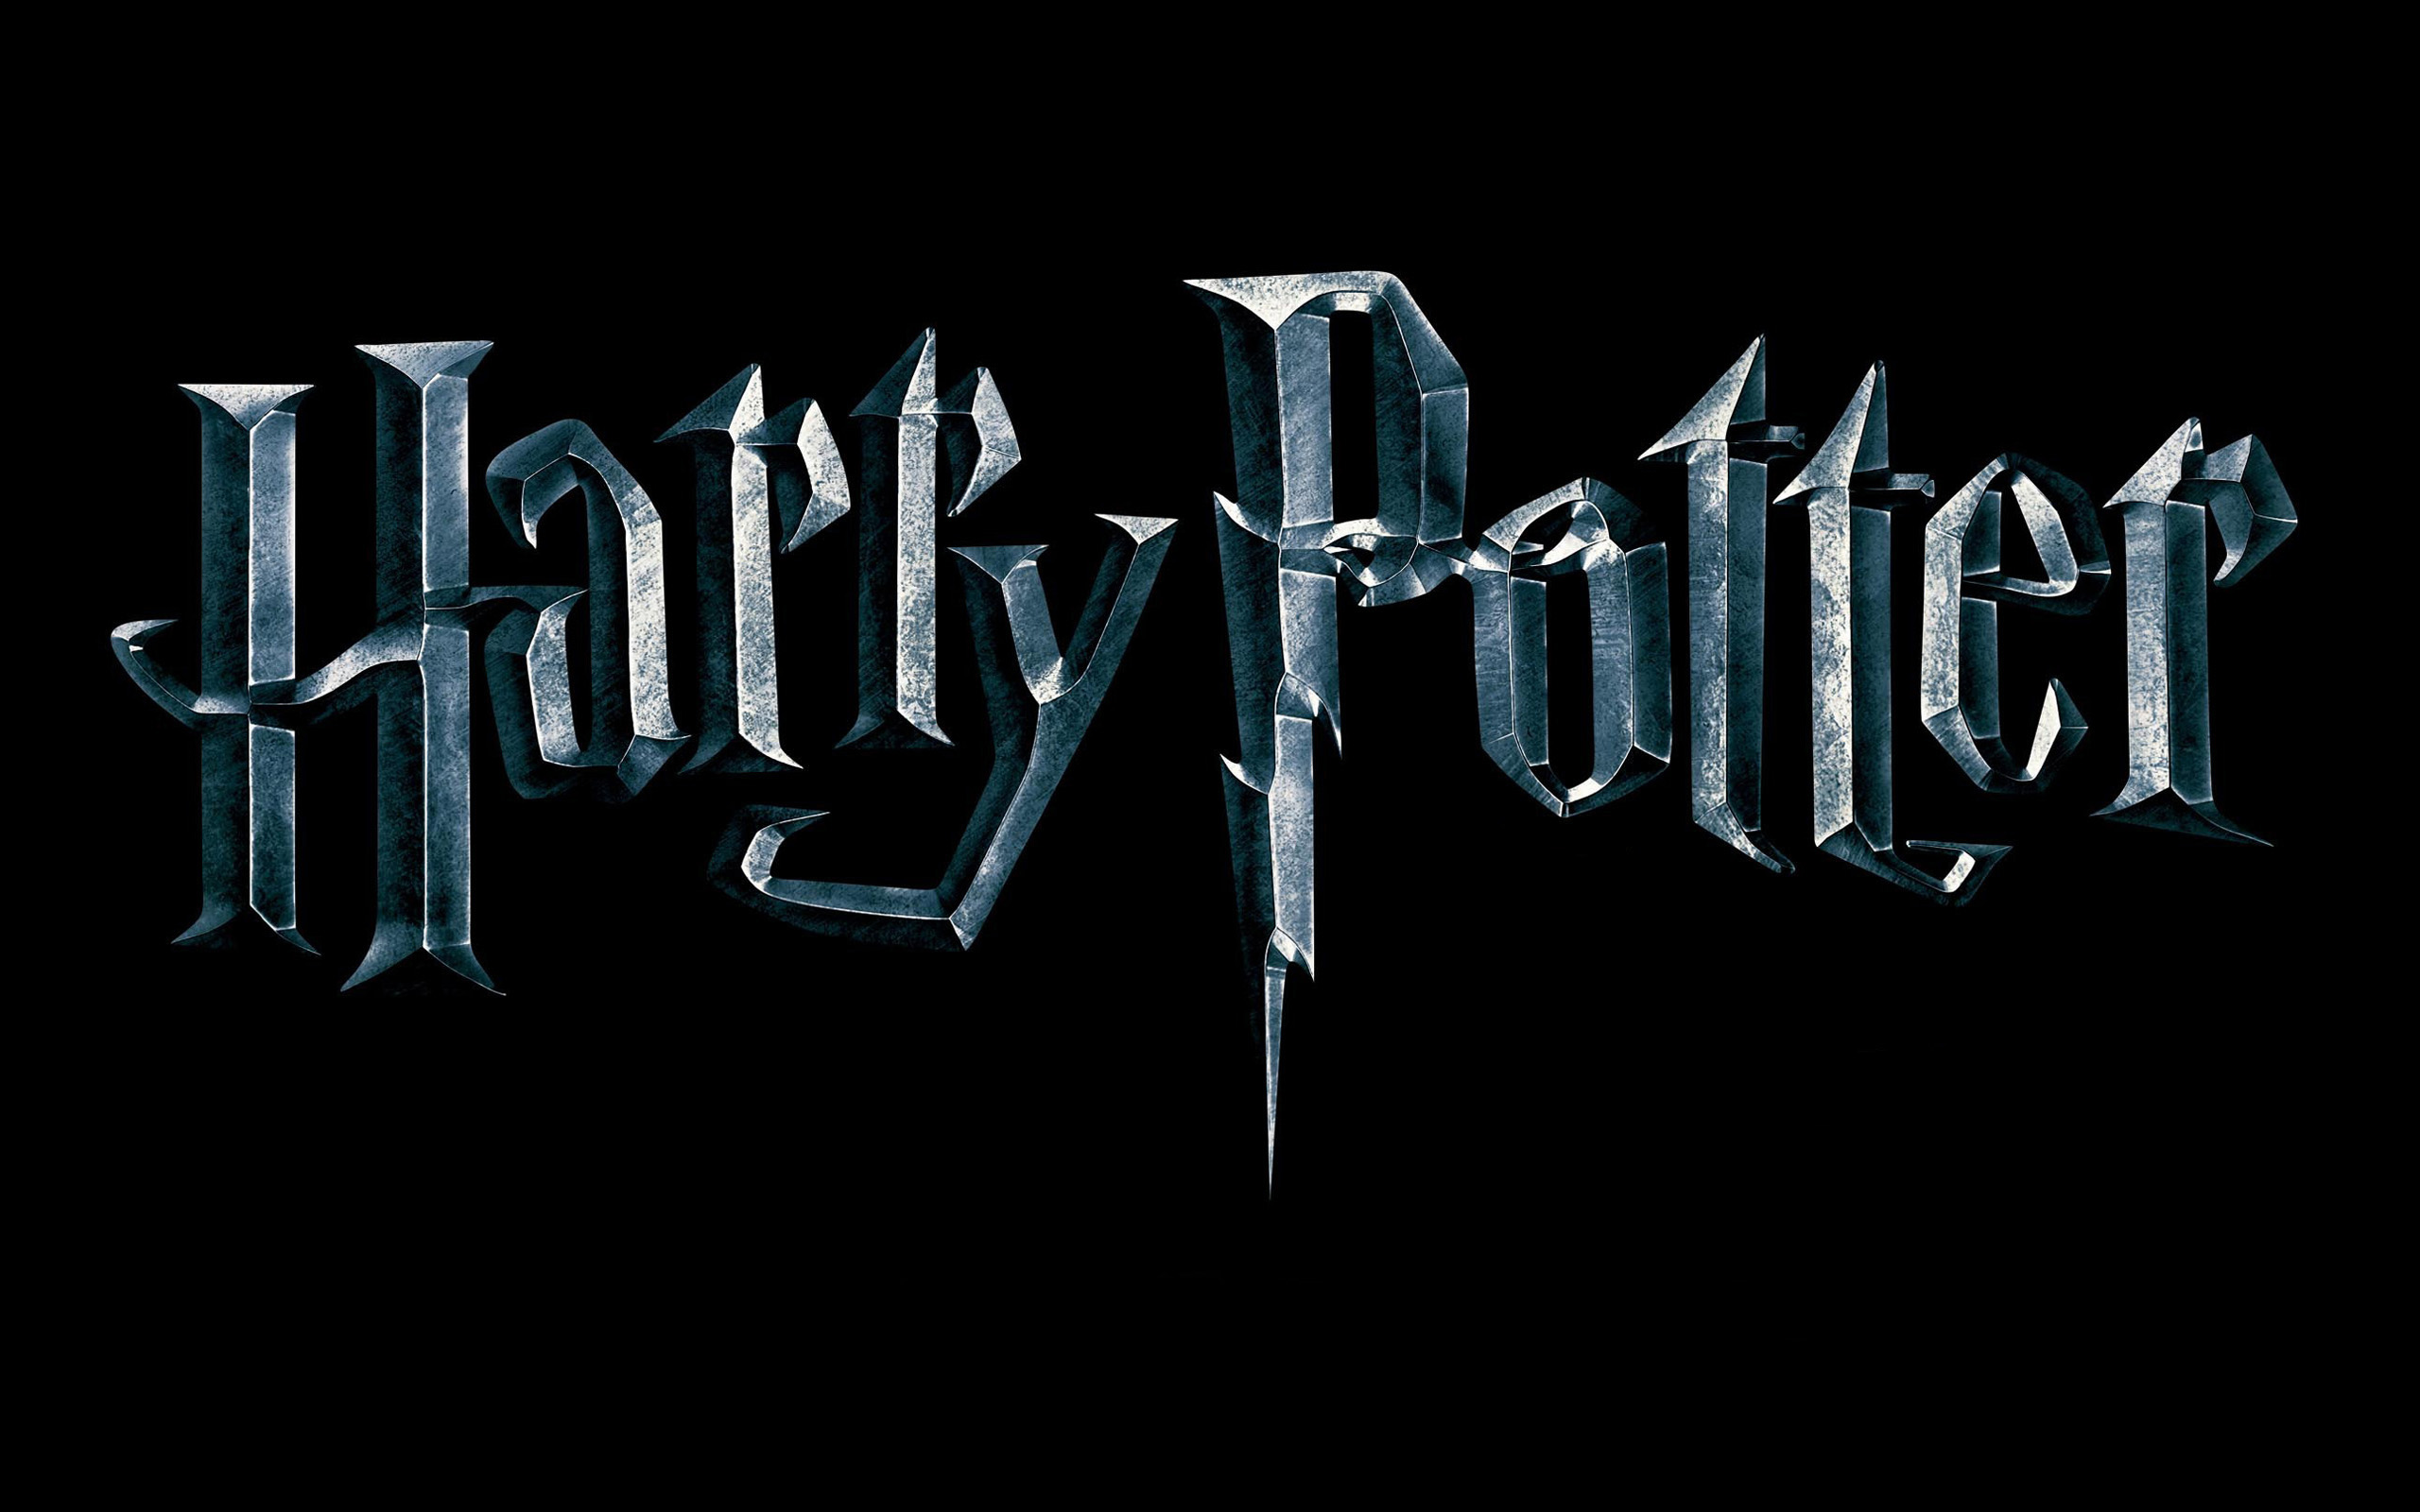 Published November 23, 2010 at 2560 × 1600 in 149 Harry Potter Movies Huge Widescreen Wallpapers ...